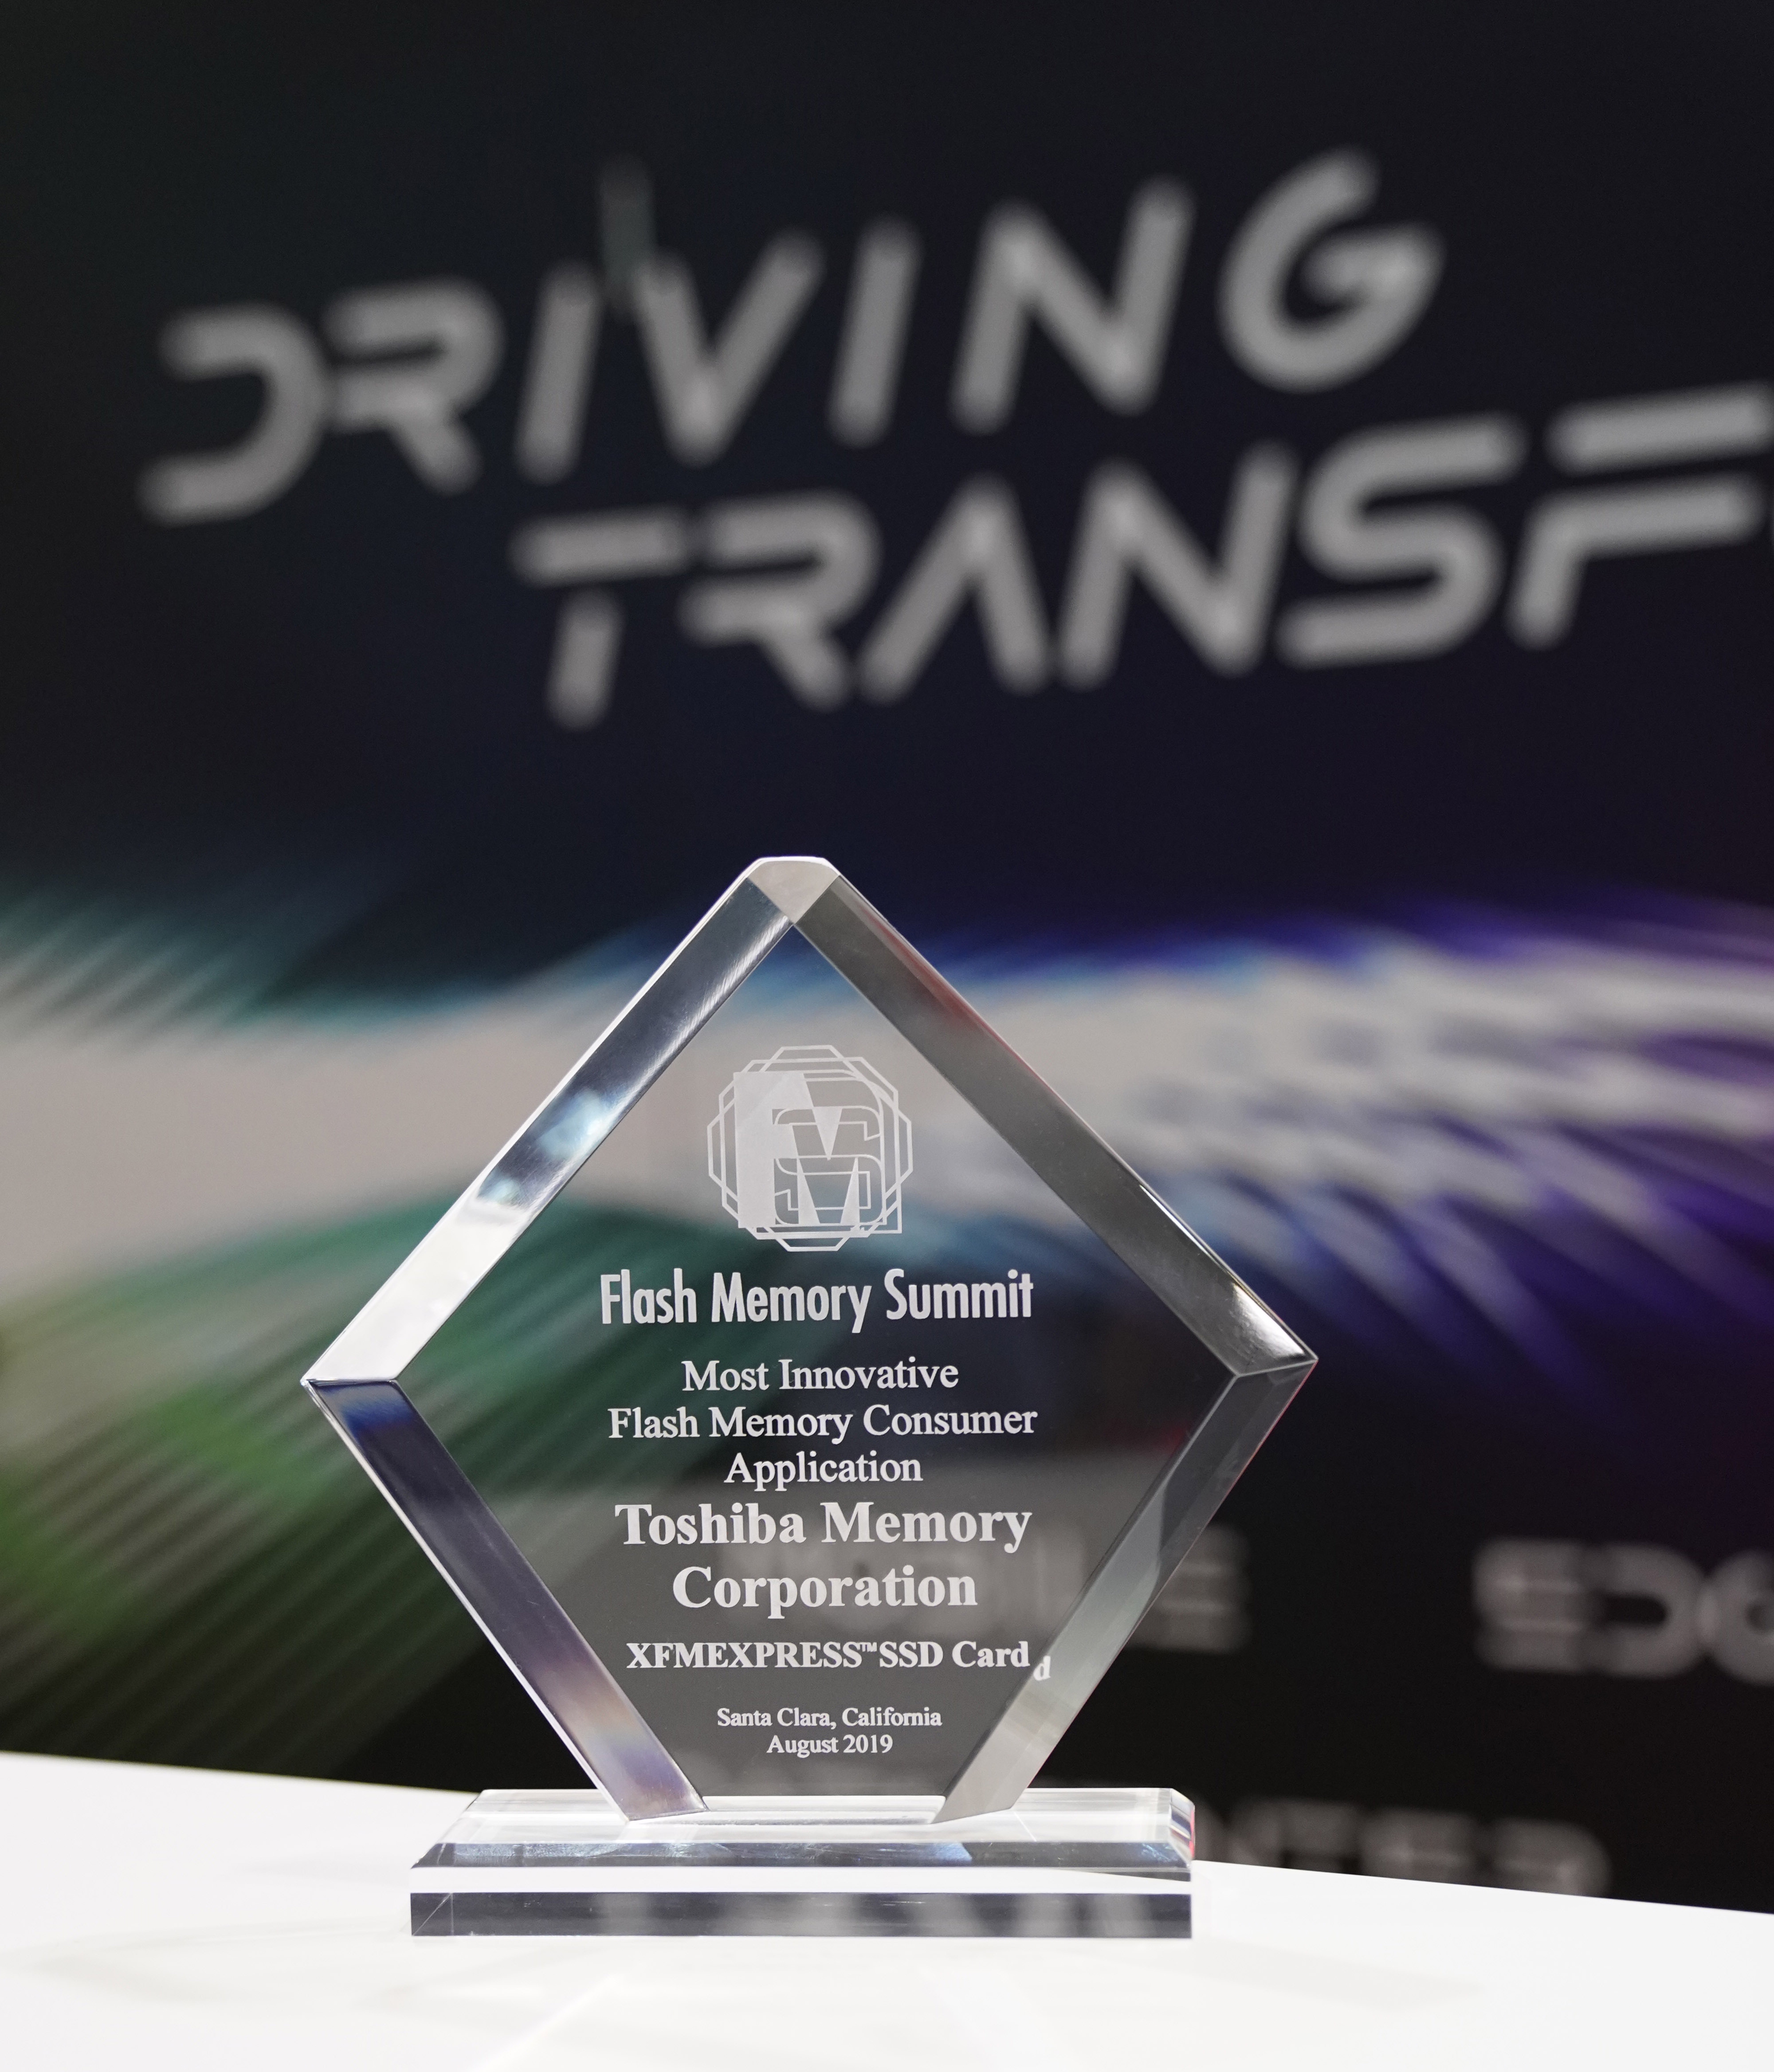 Toshiba Memory's XFMEXPRESS Technology Awarded 'Best of Show